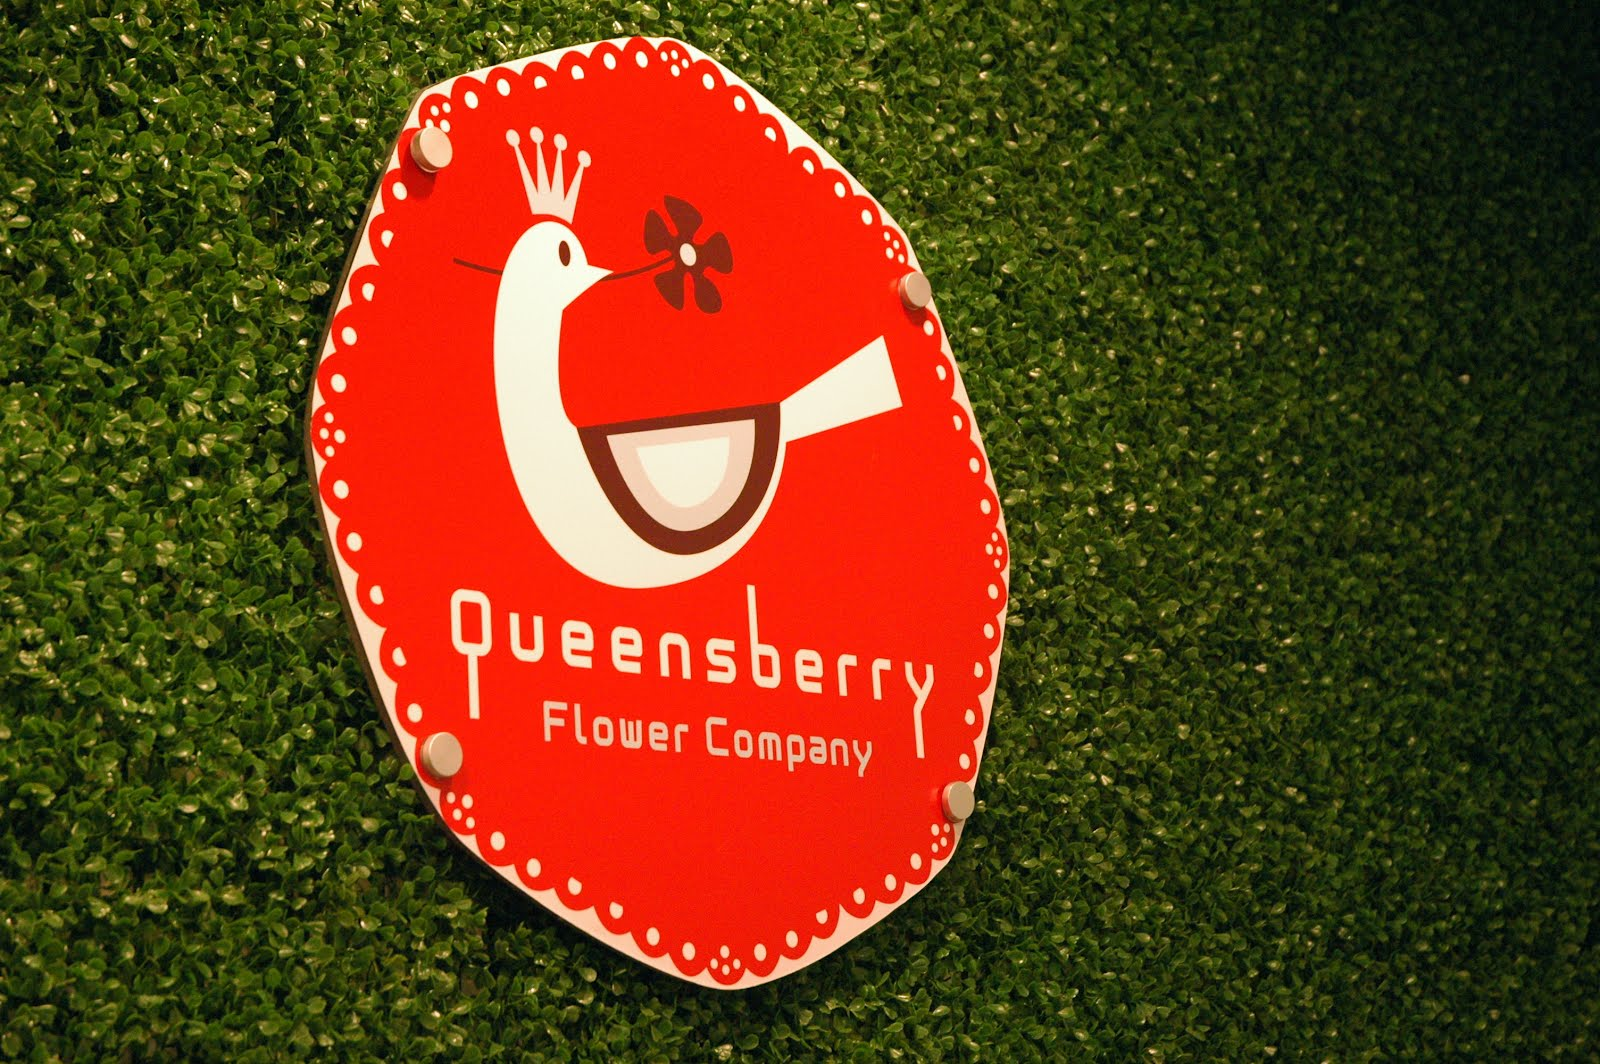 QUEENSBLOG by Queensberry Flower Company (日本語)